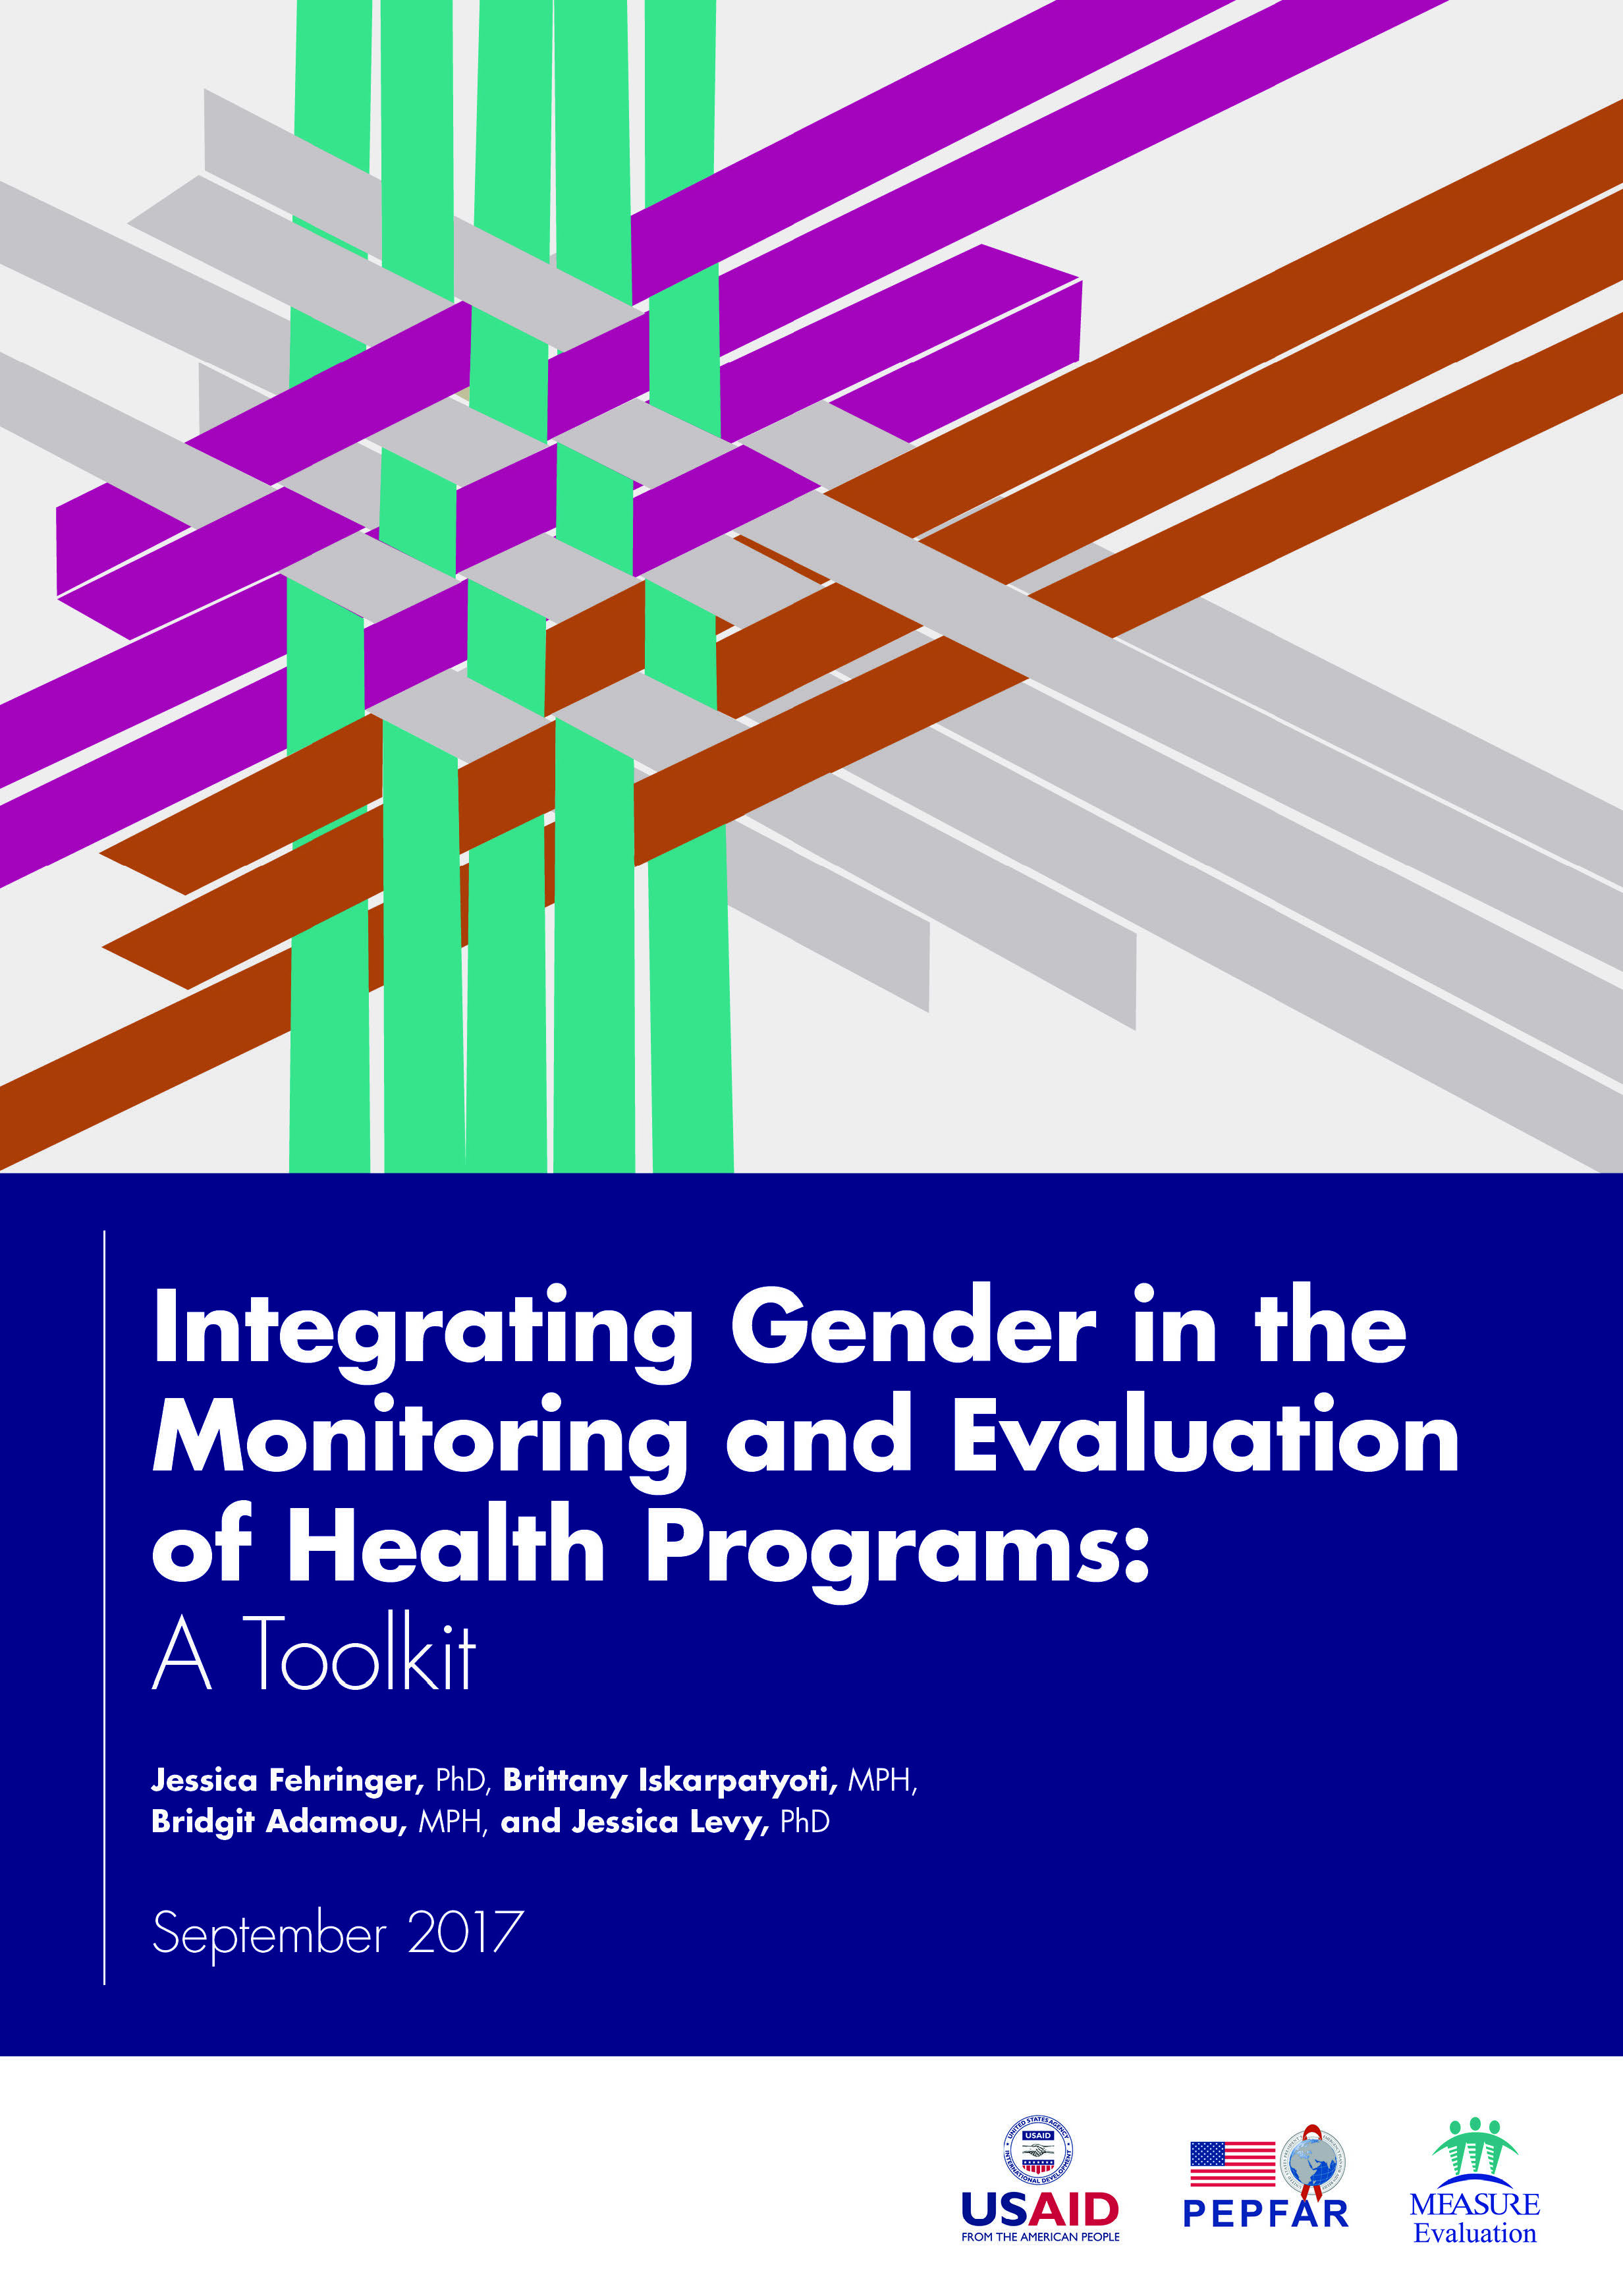 Integrating Gender in the Monitoring and Evaluation of Health Programs: A Toolkit